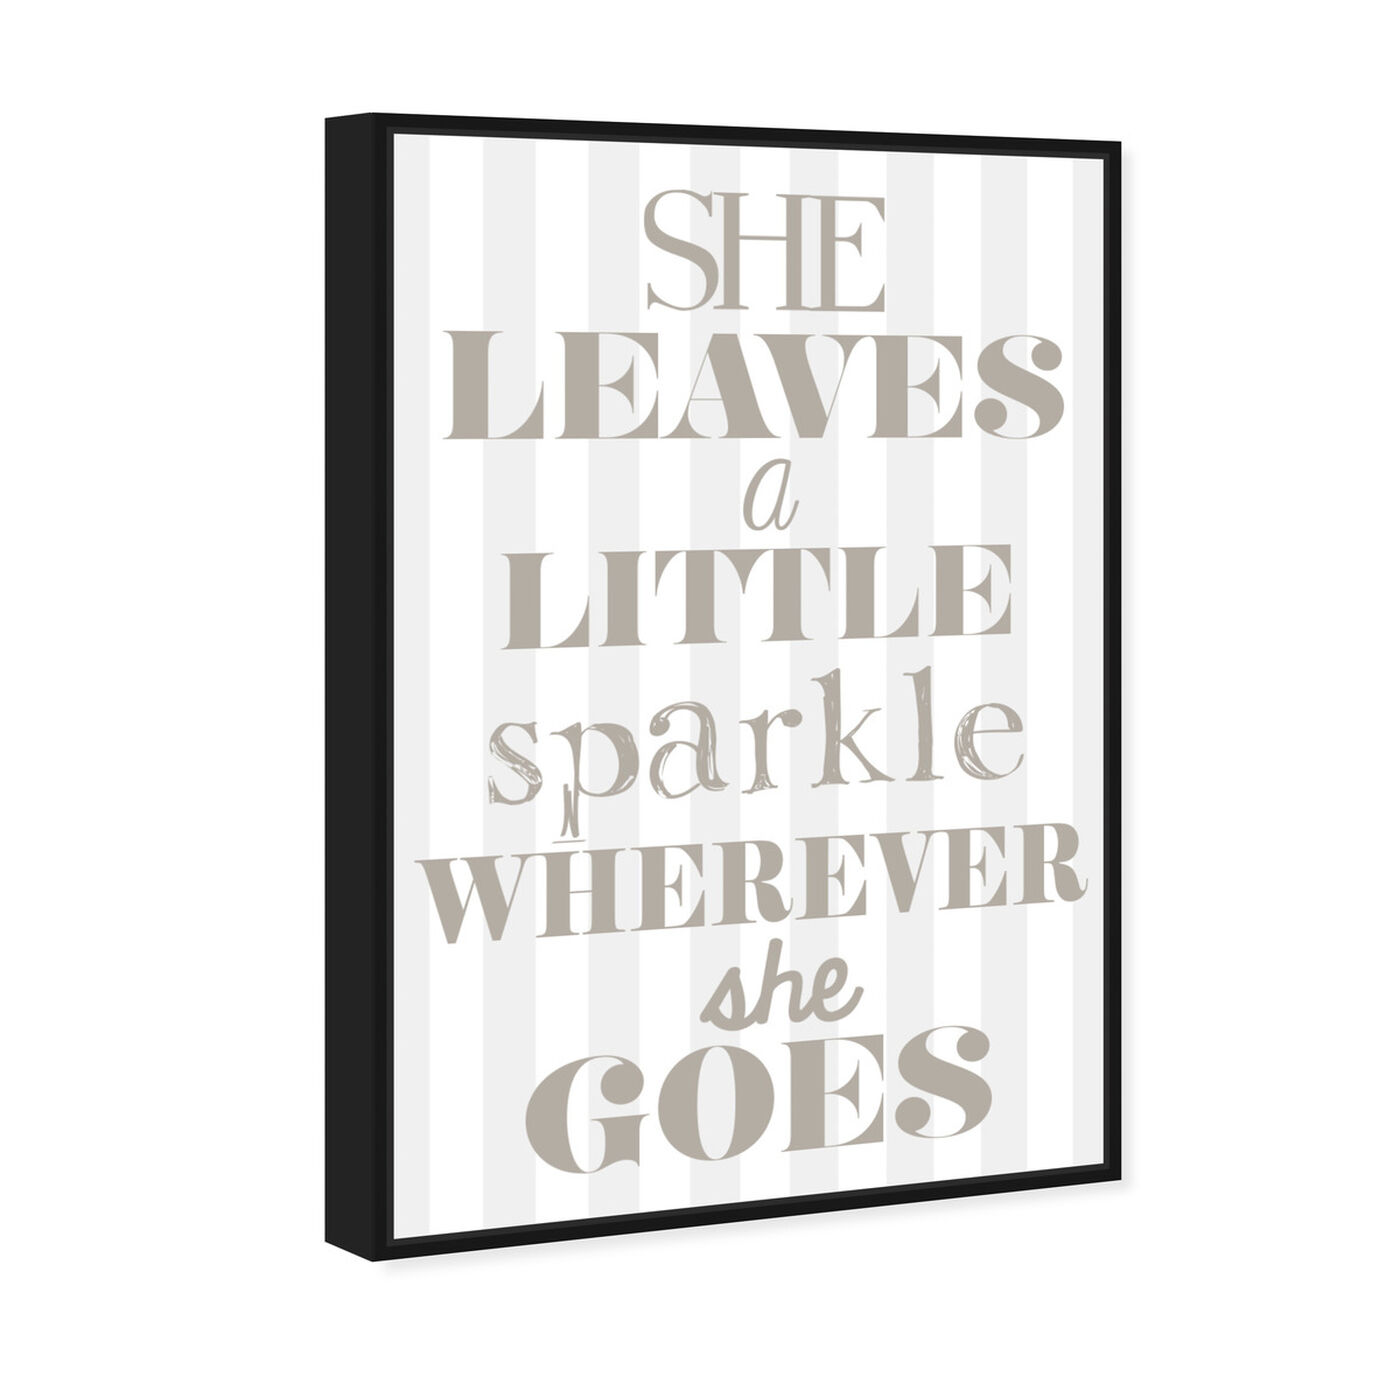 Angled view of Little Sparkle featuring typography and quotes and beauty quotes and sayings art.